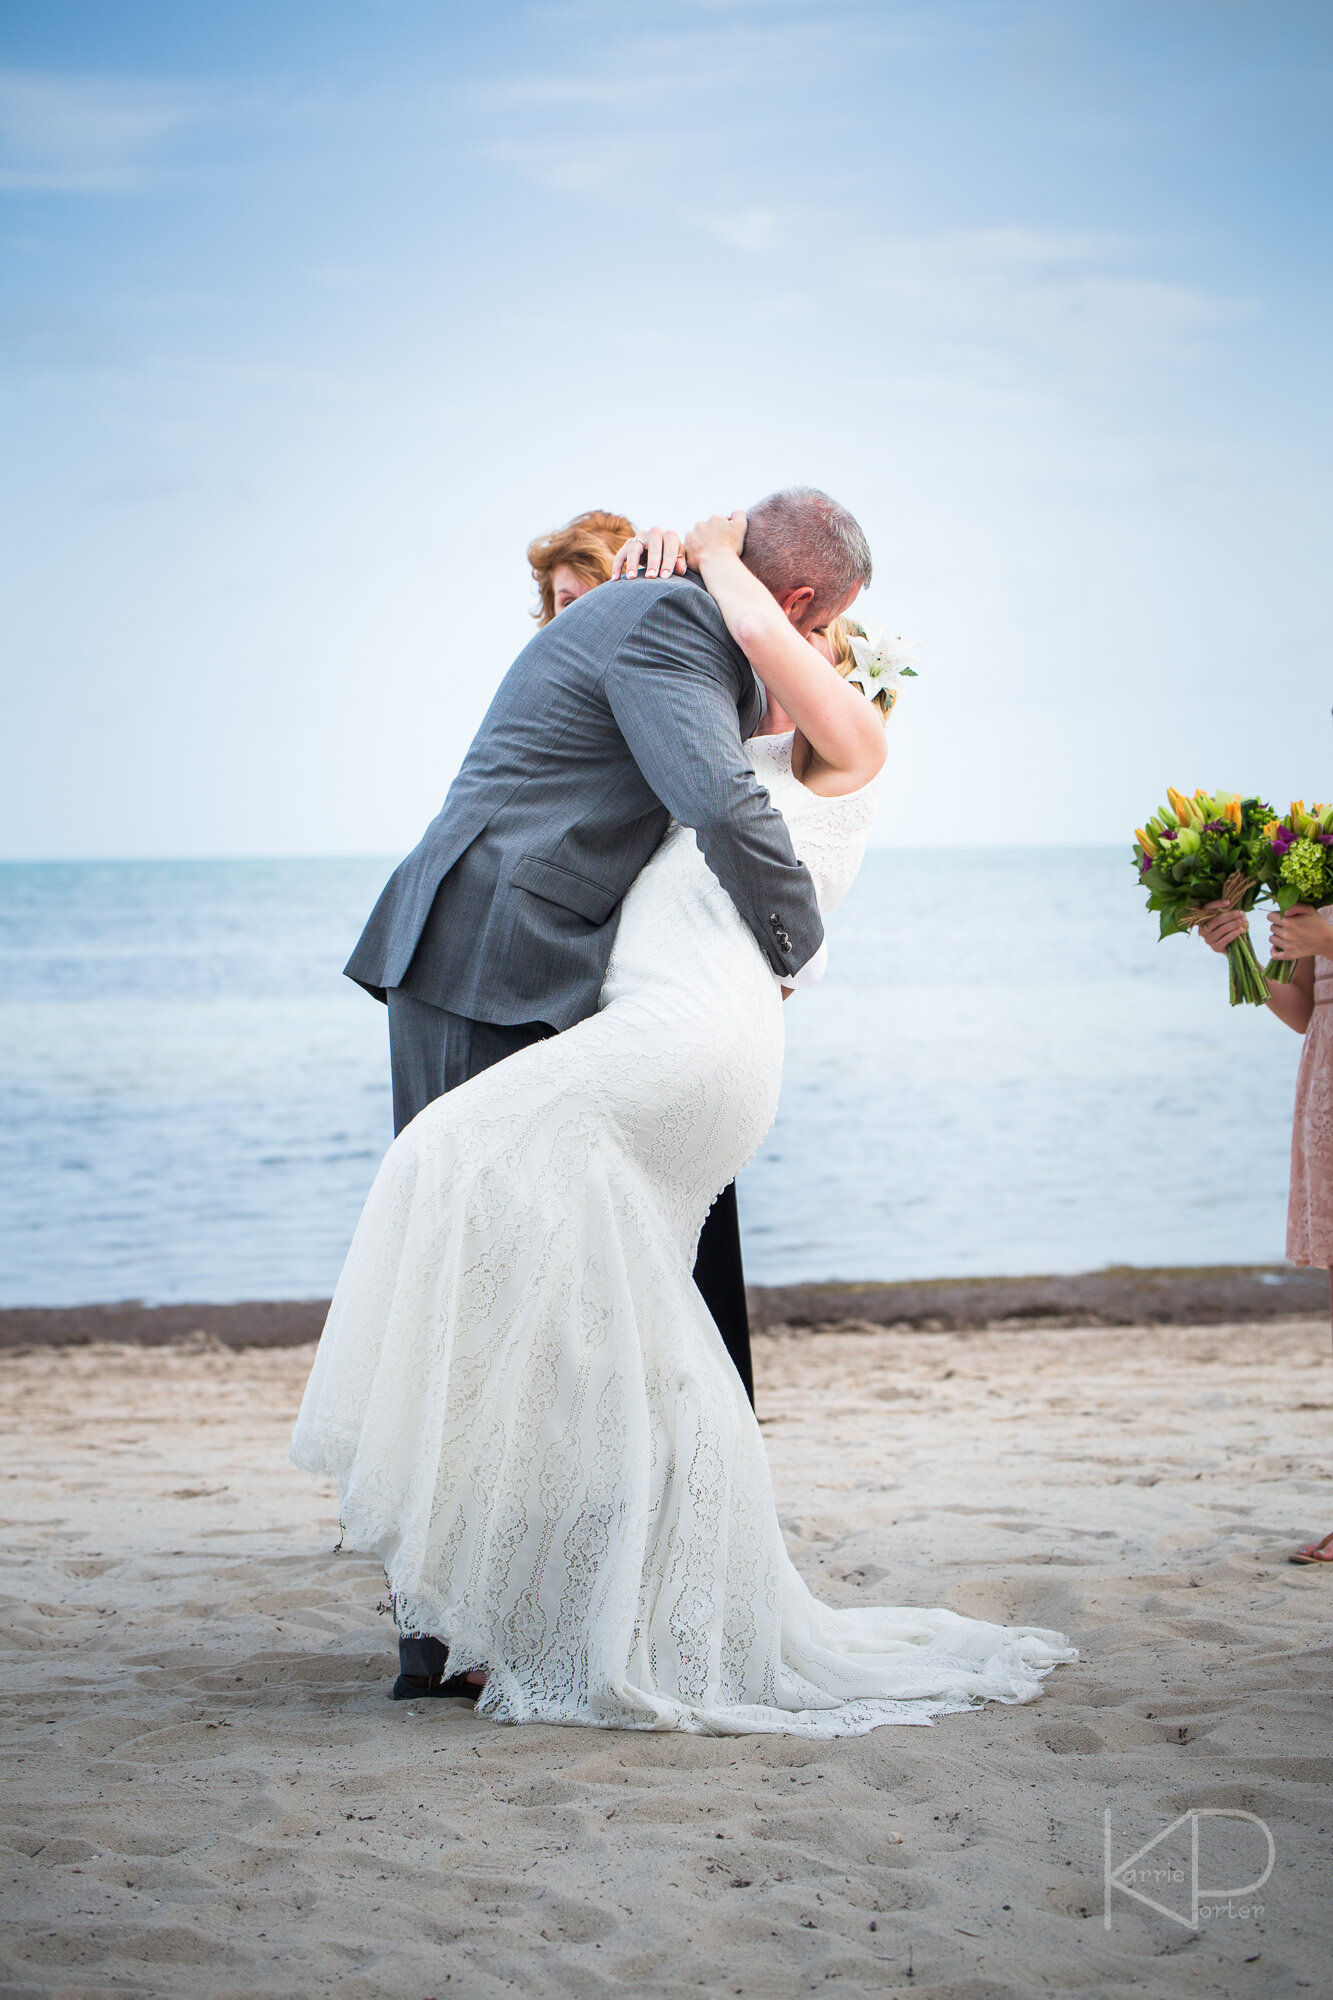 Bride walking with her father down the aisle at the beach